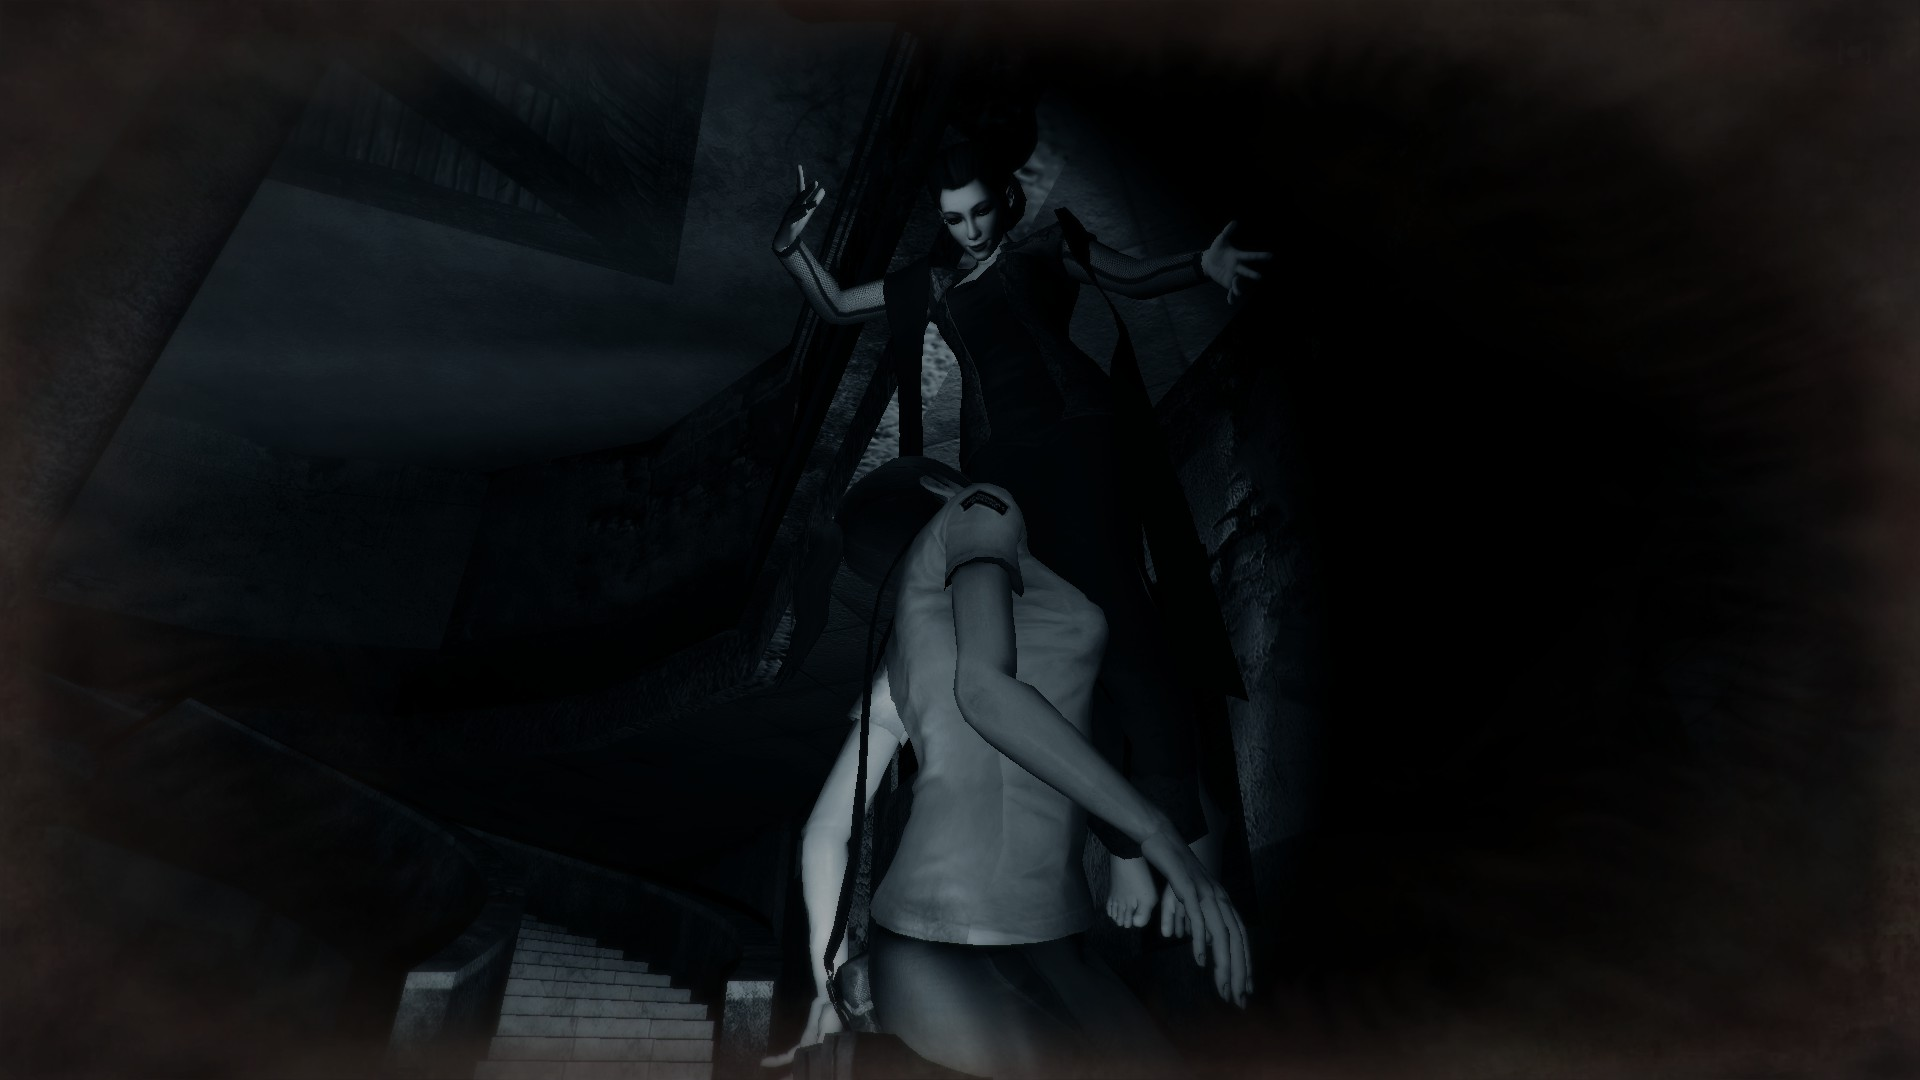 Download game dreadout pc highly compressed